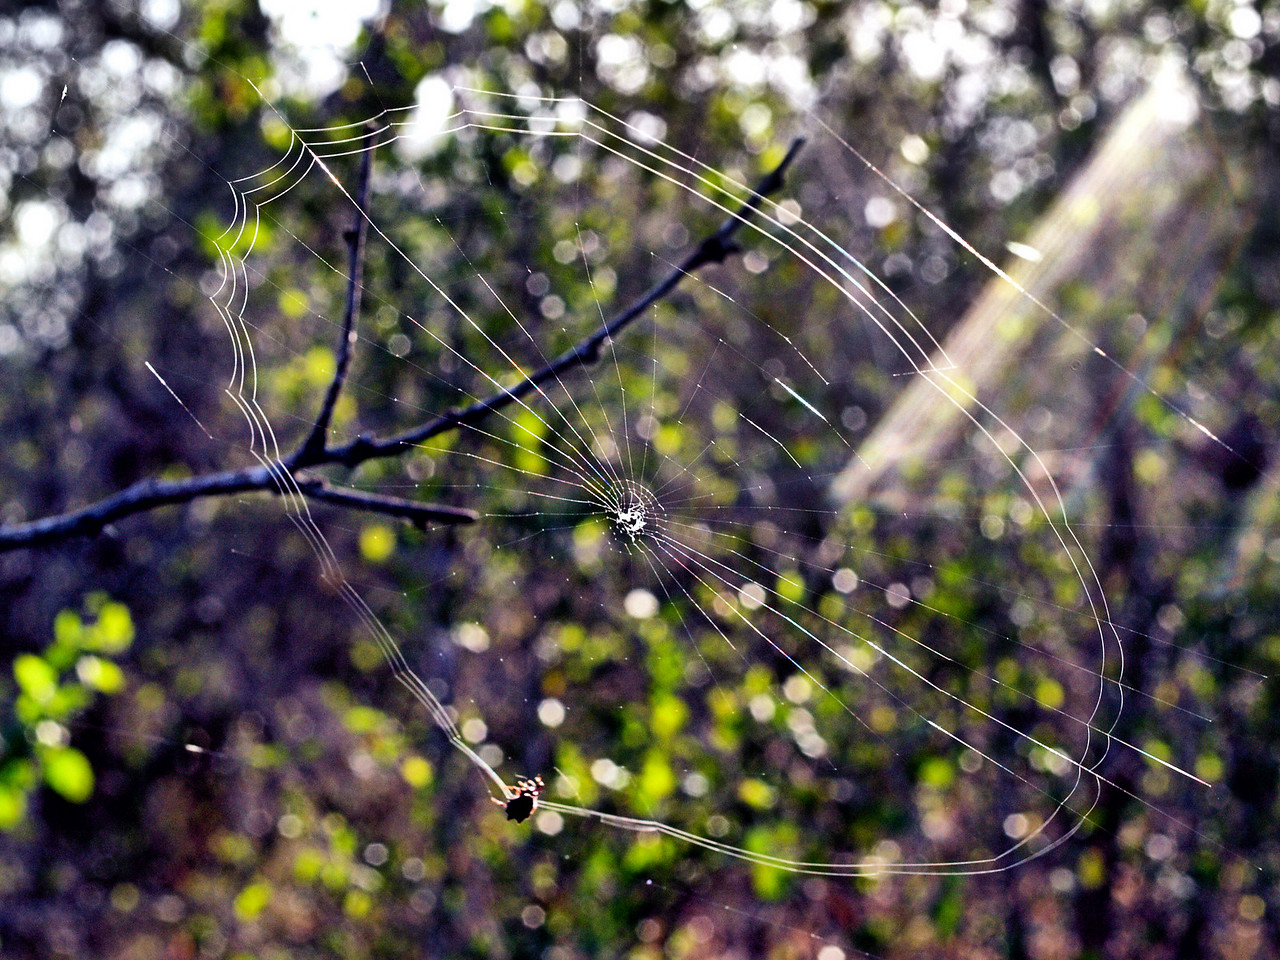 OLYMPUS DIGITAL CAMERA--Spider web in the early morning sun.